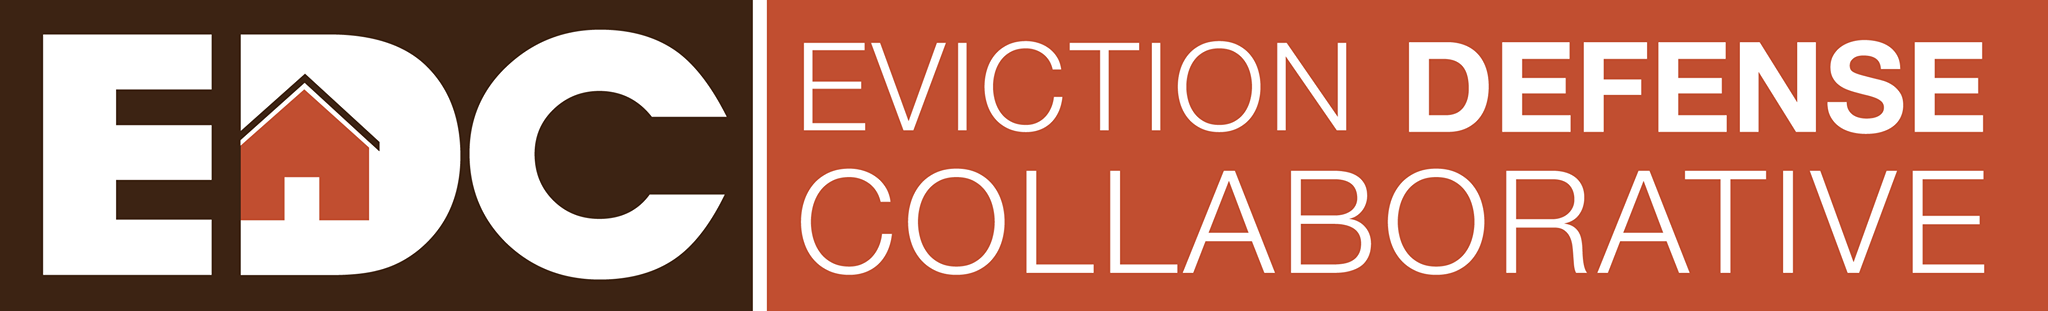 Eviction Defense Collaborative, San Francisco, CA - Localwise business profile picture